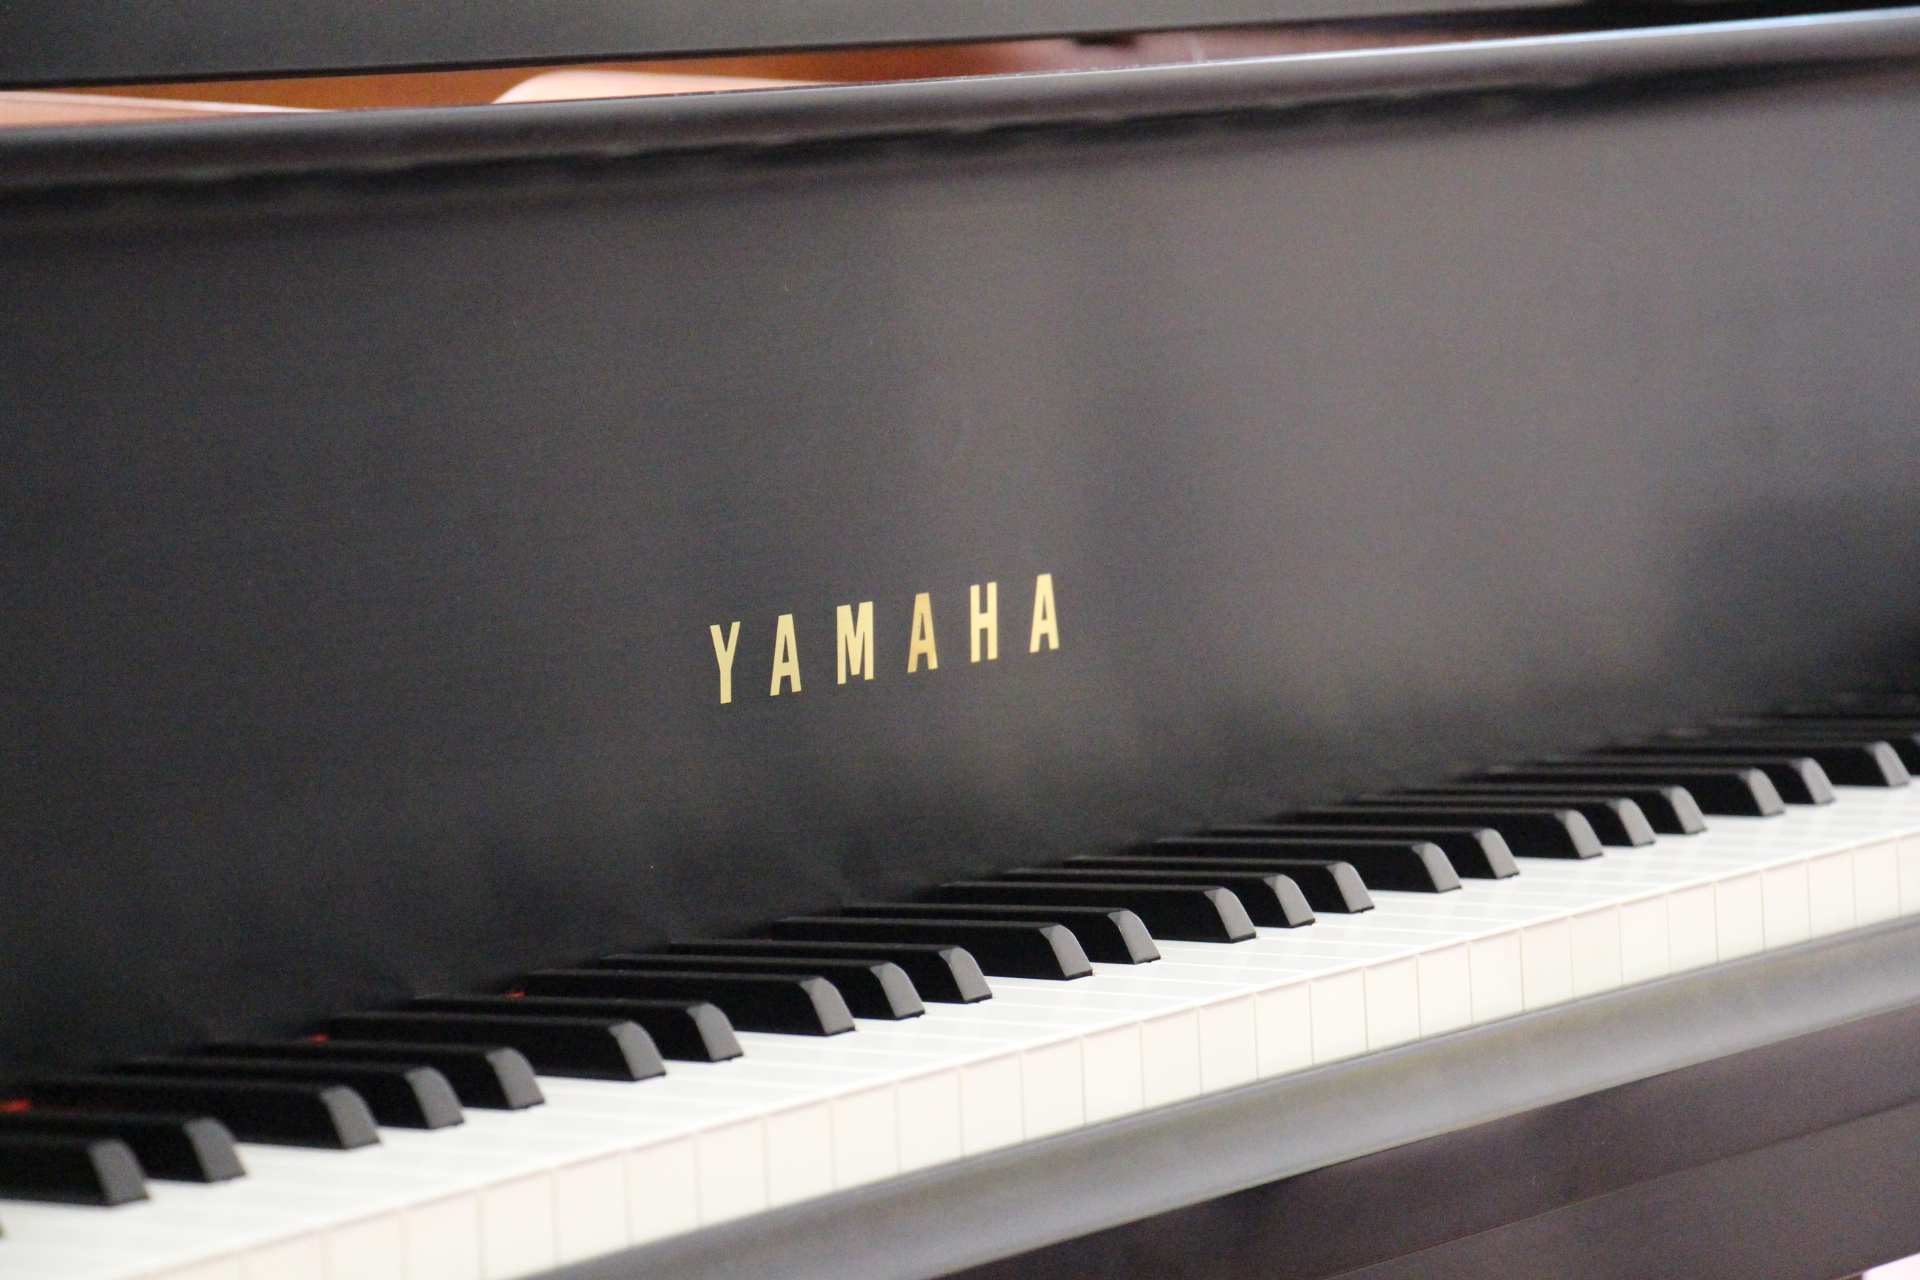 yamaha pianos general information